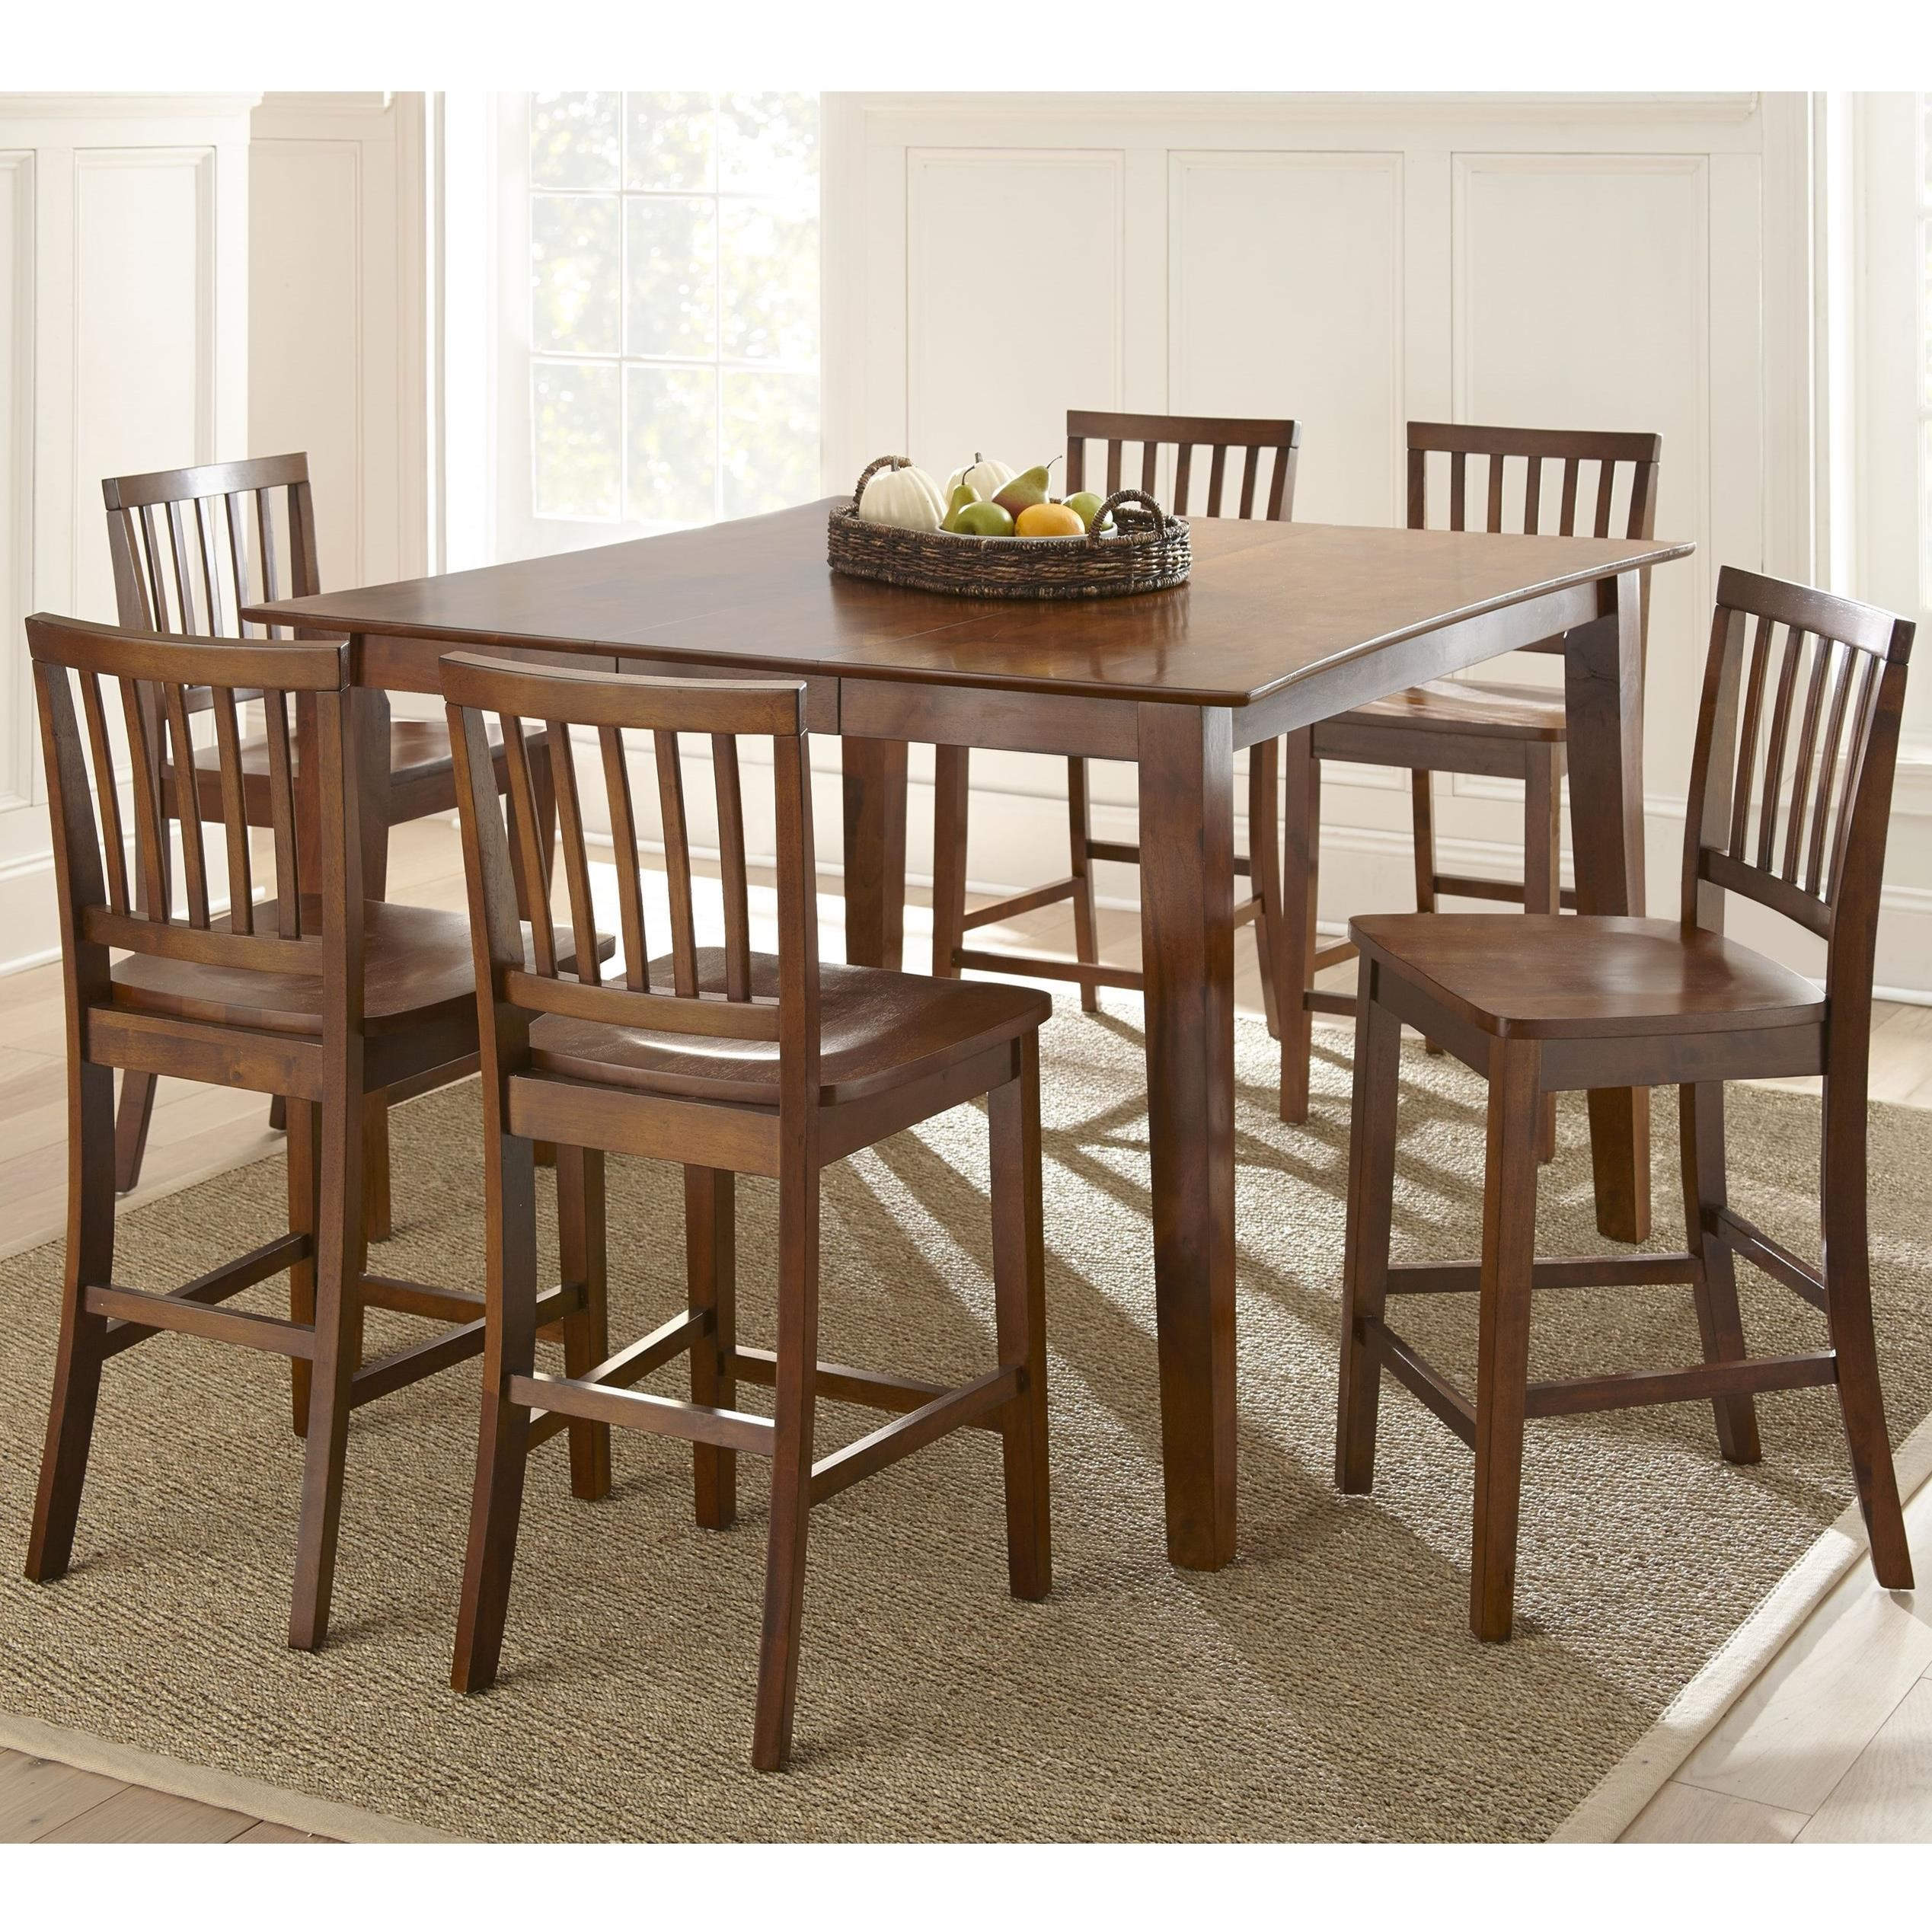 Delicieux Steve Silver Branson 7 Piece Counter Height Dining Set   Item Number:  BR5454PTE+6x500CCE